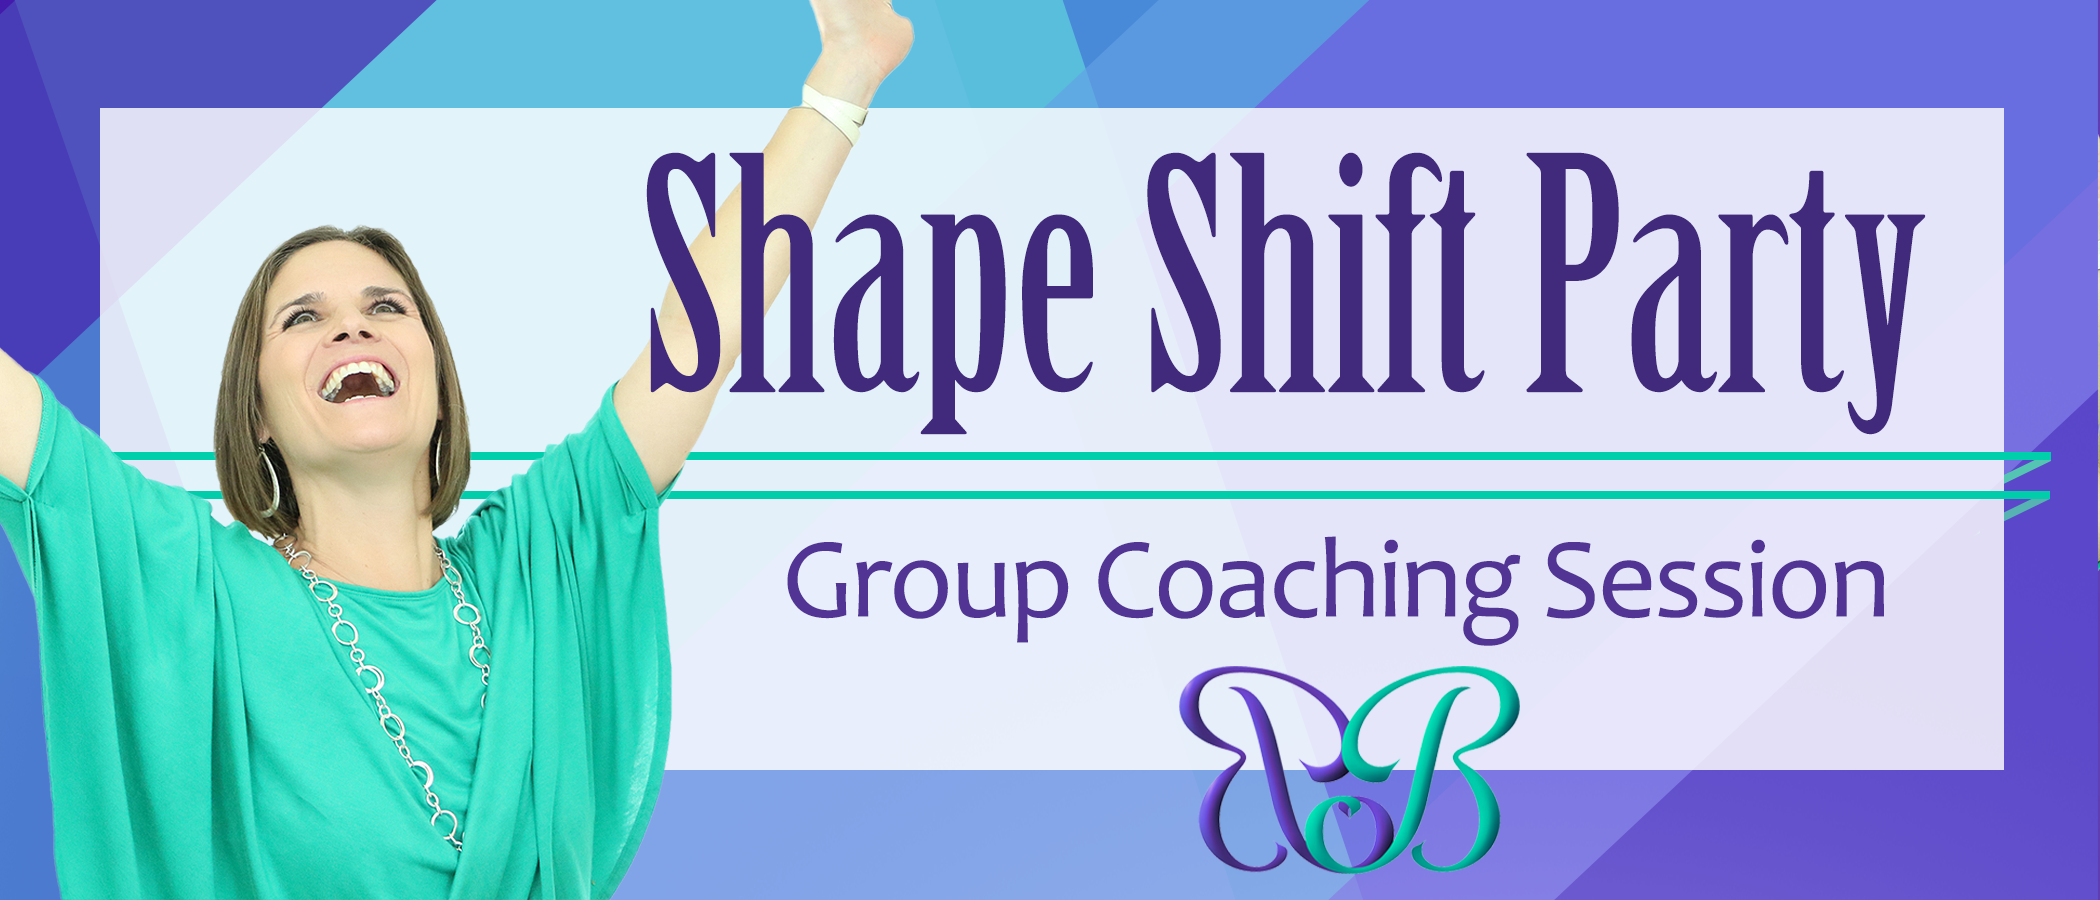 Shape Shift Party WebGraphics3